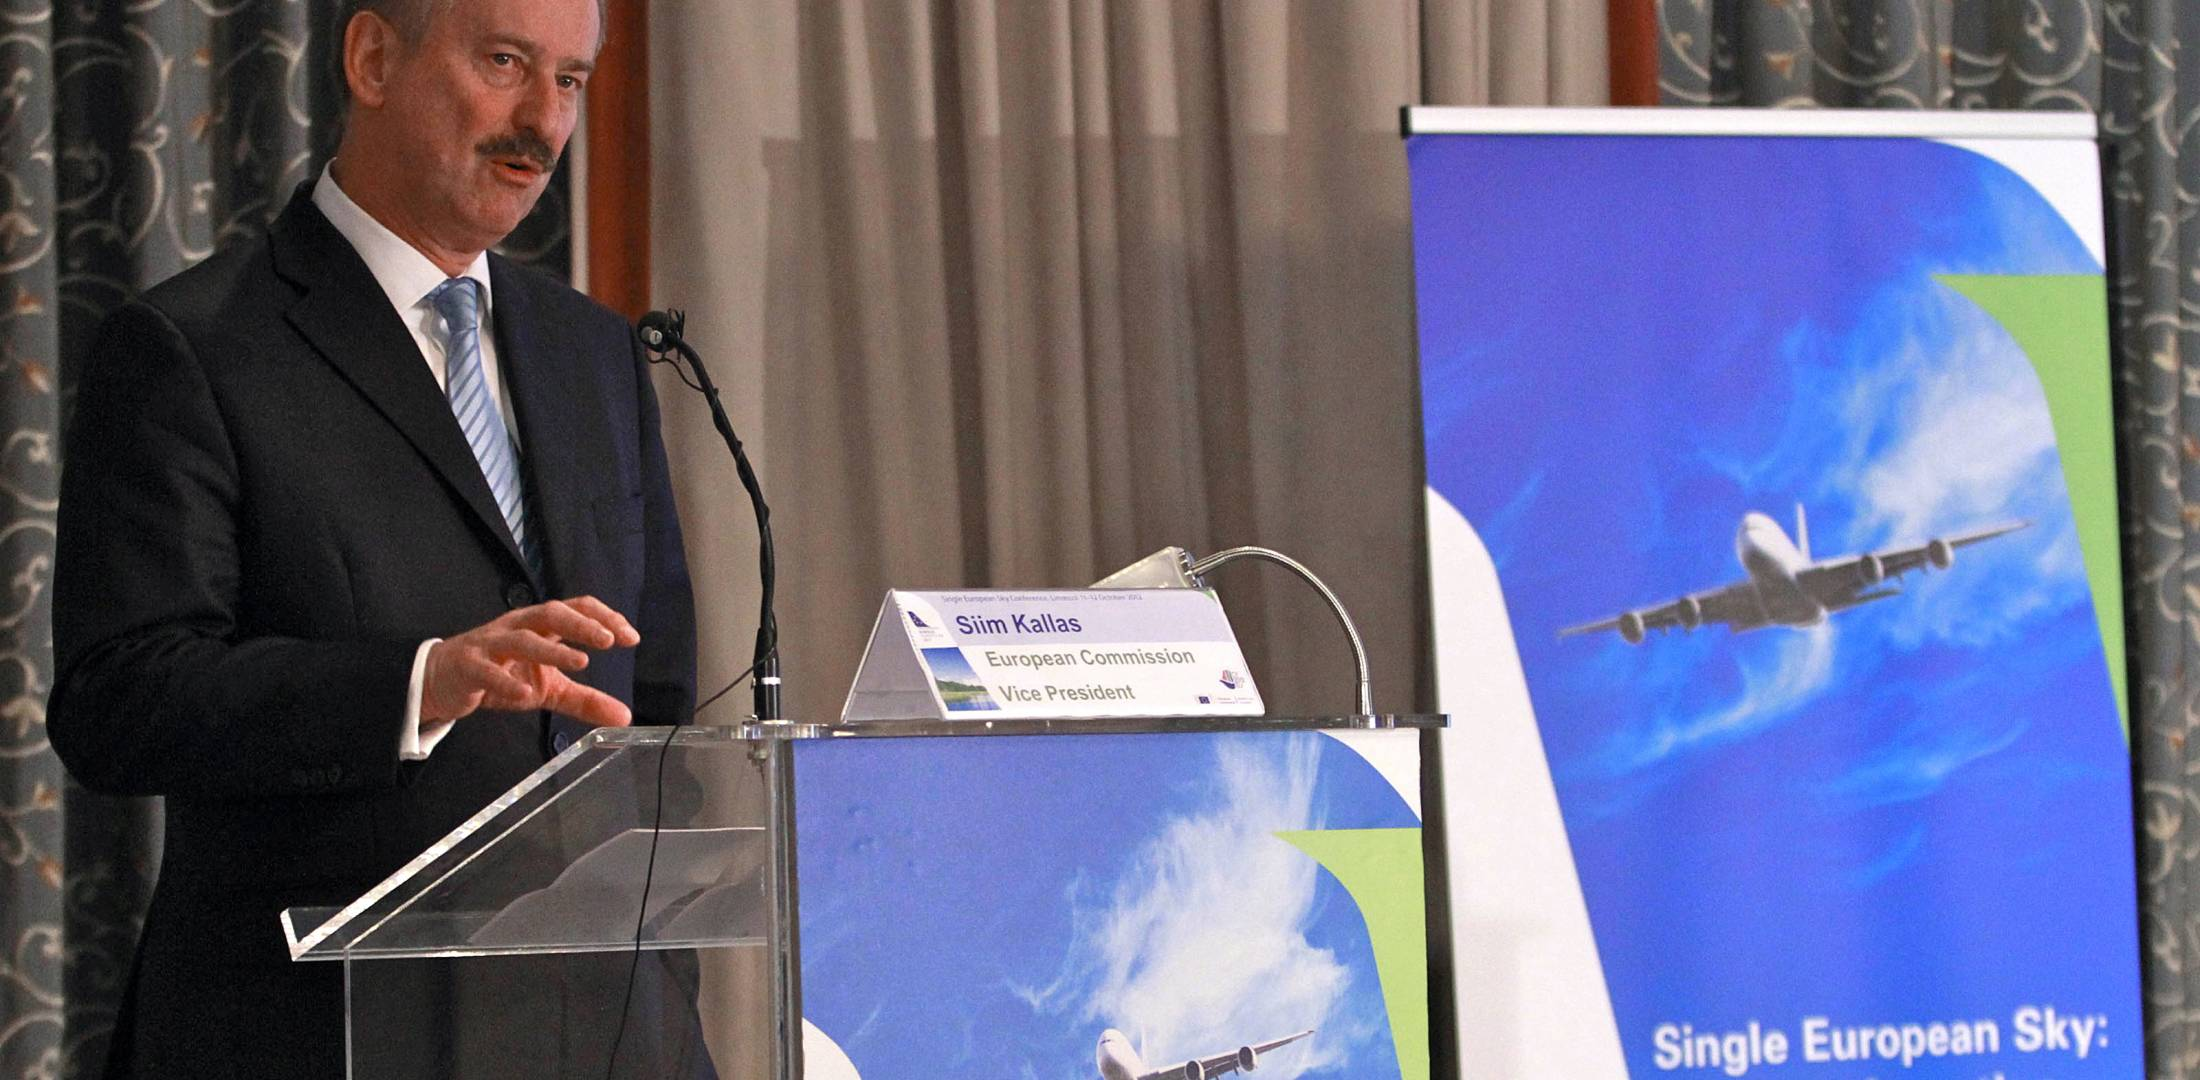 Siim Kallas, European Commission vice president for transport